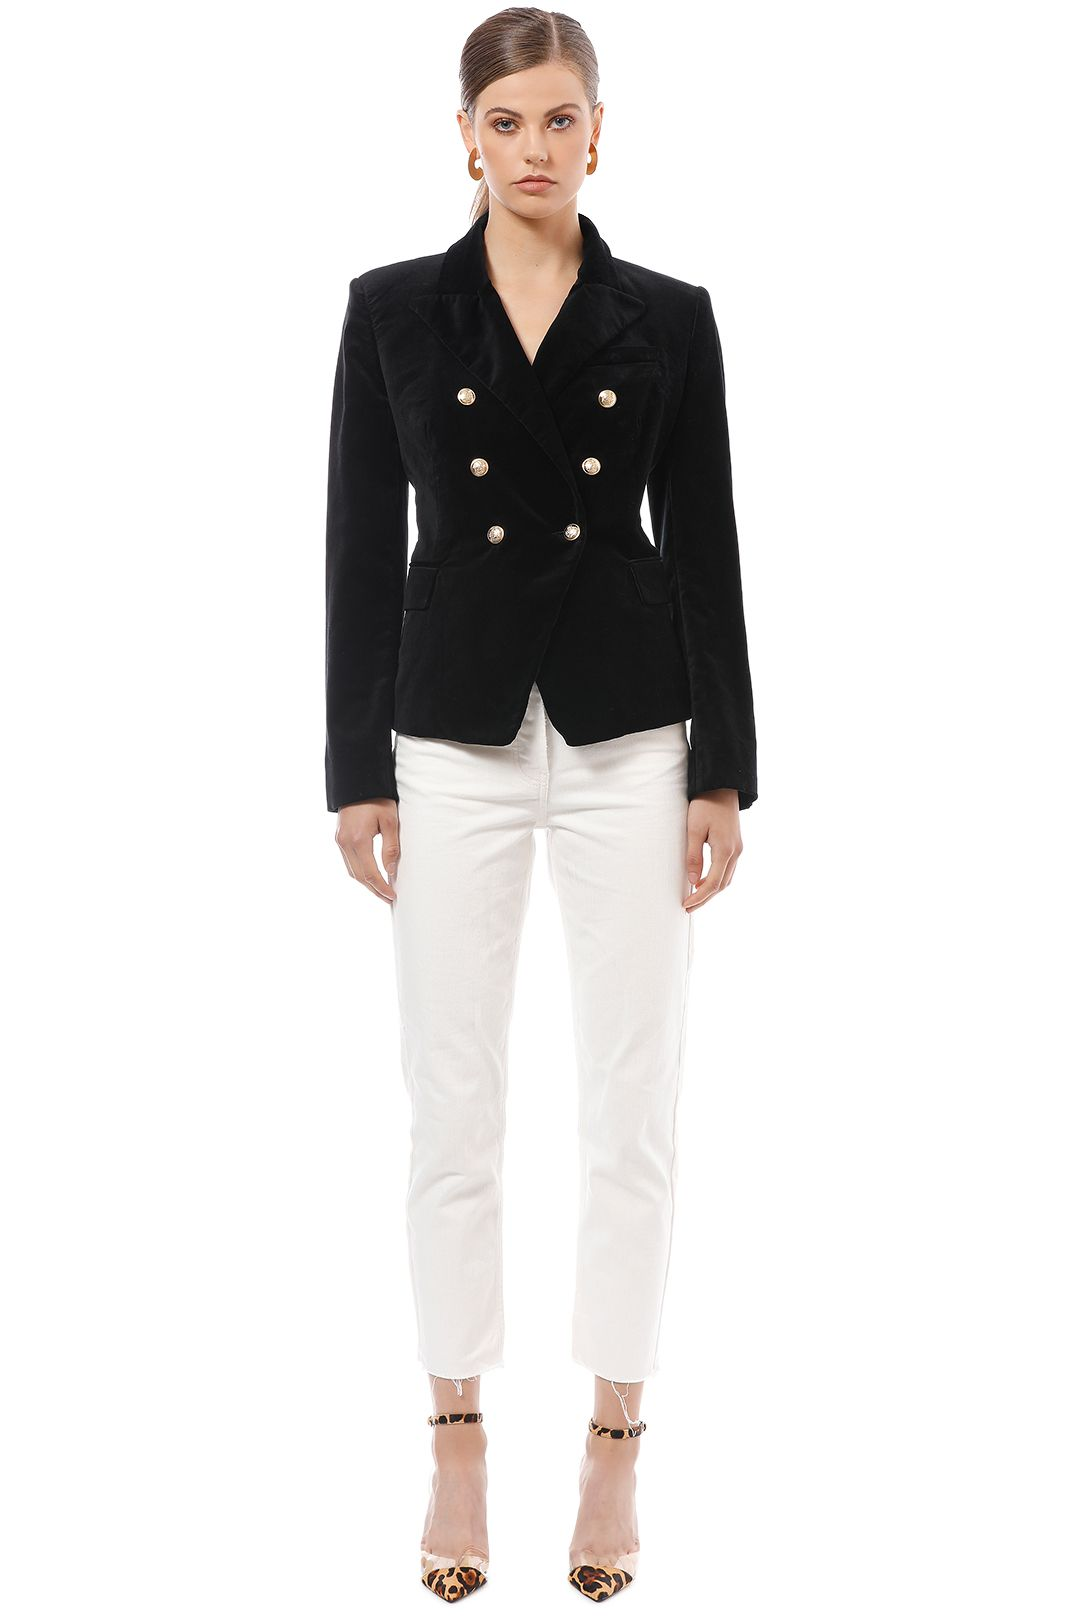 Camilla and Marc - Velvet Dimmer Blazer - Black - Front